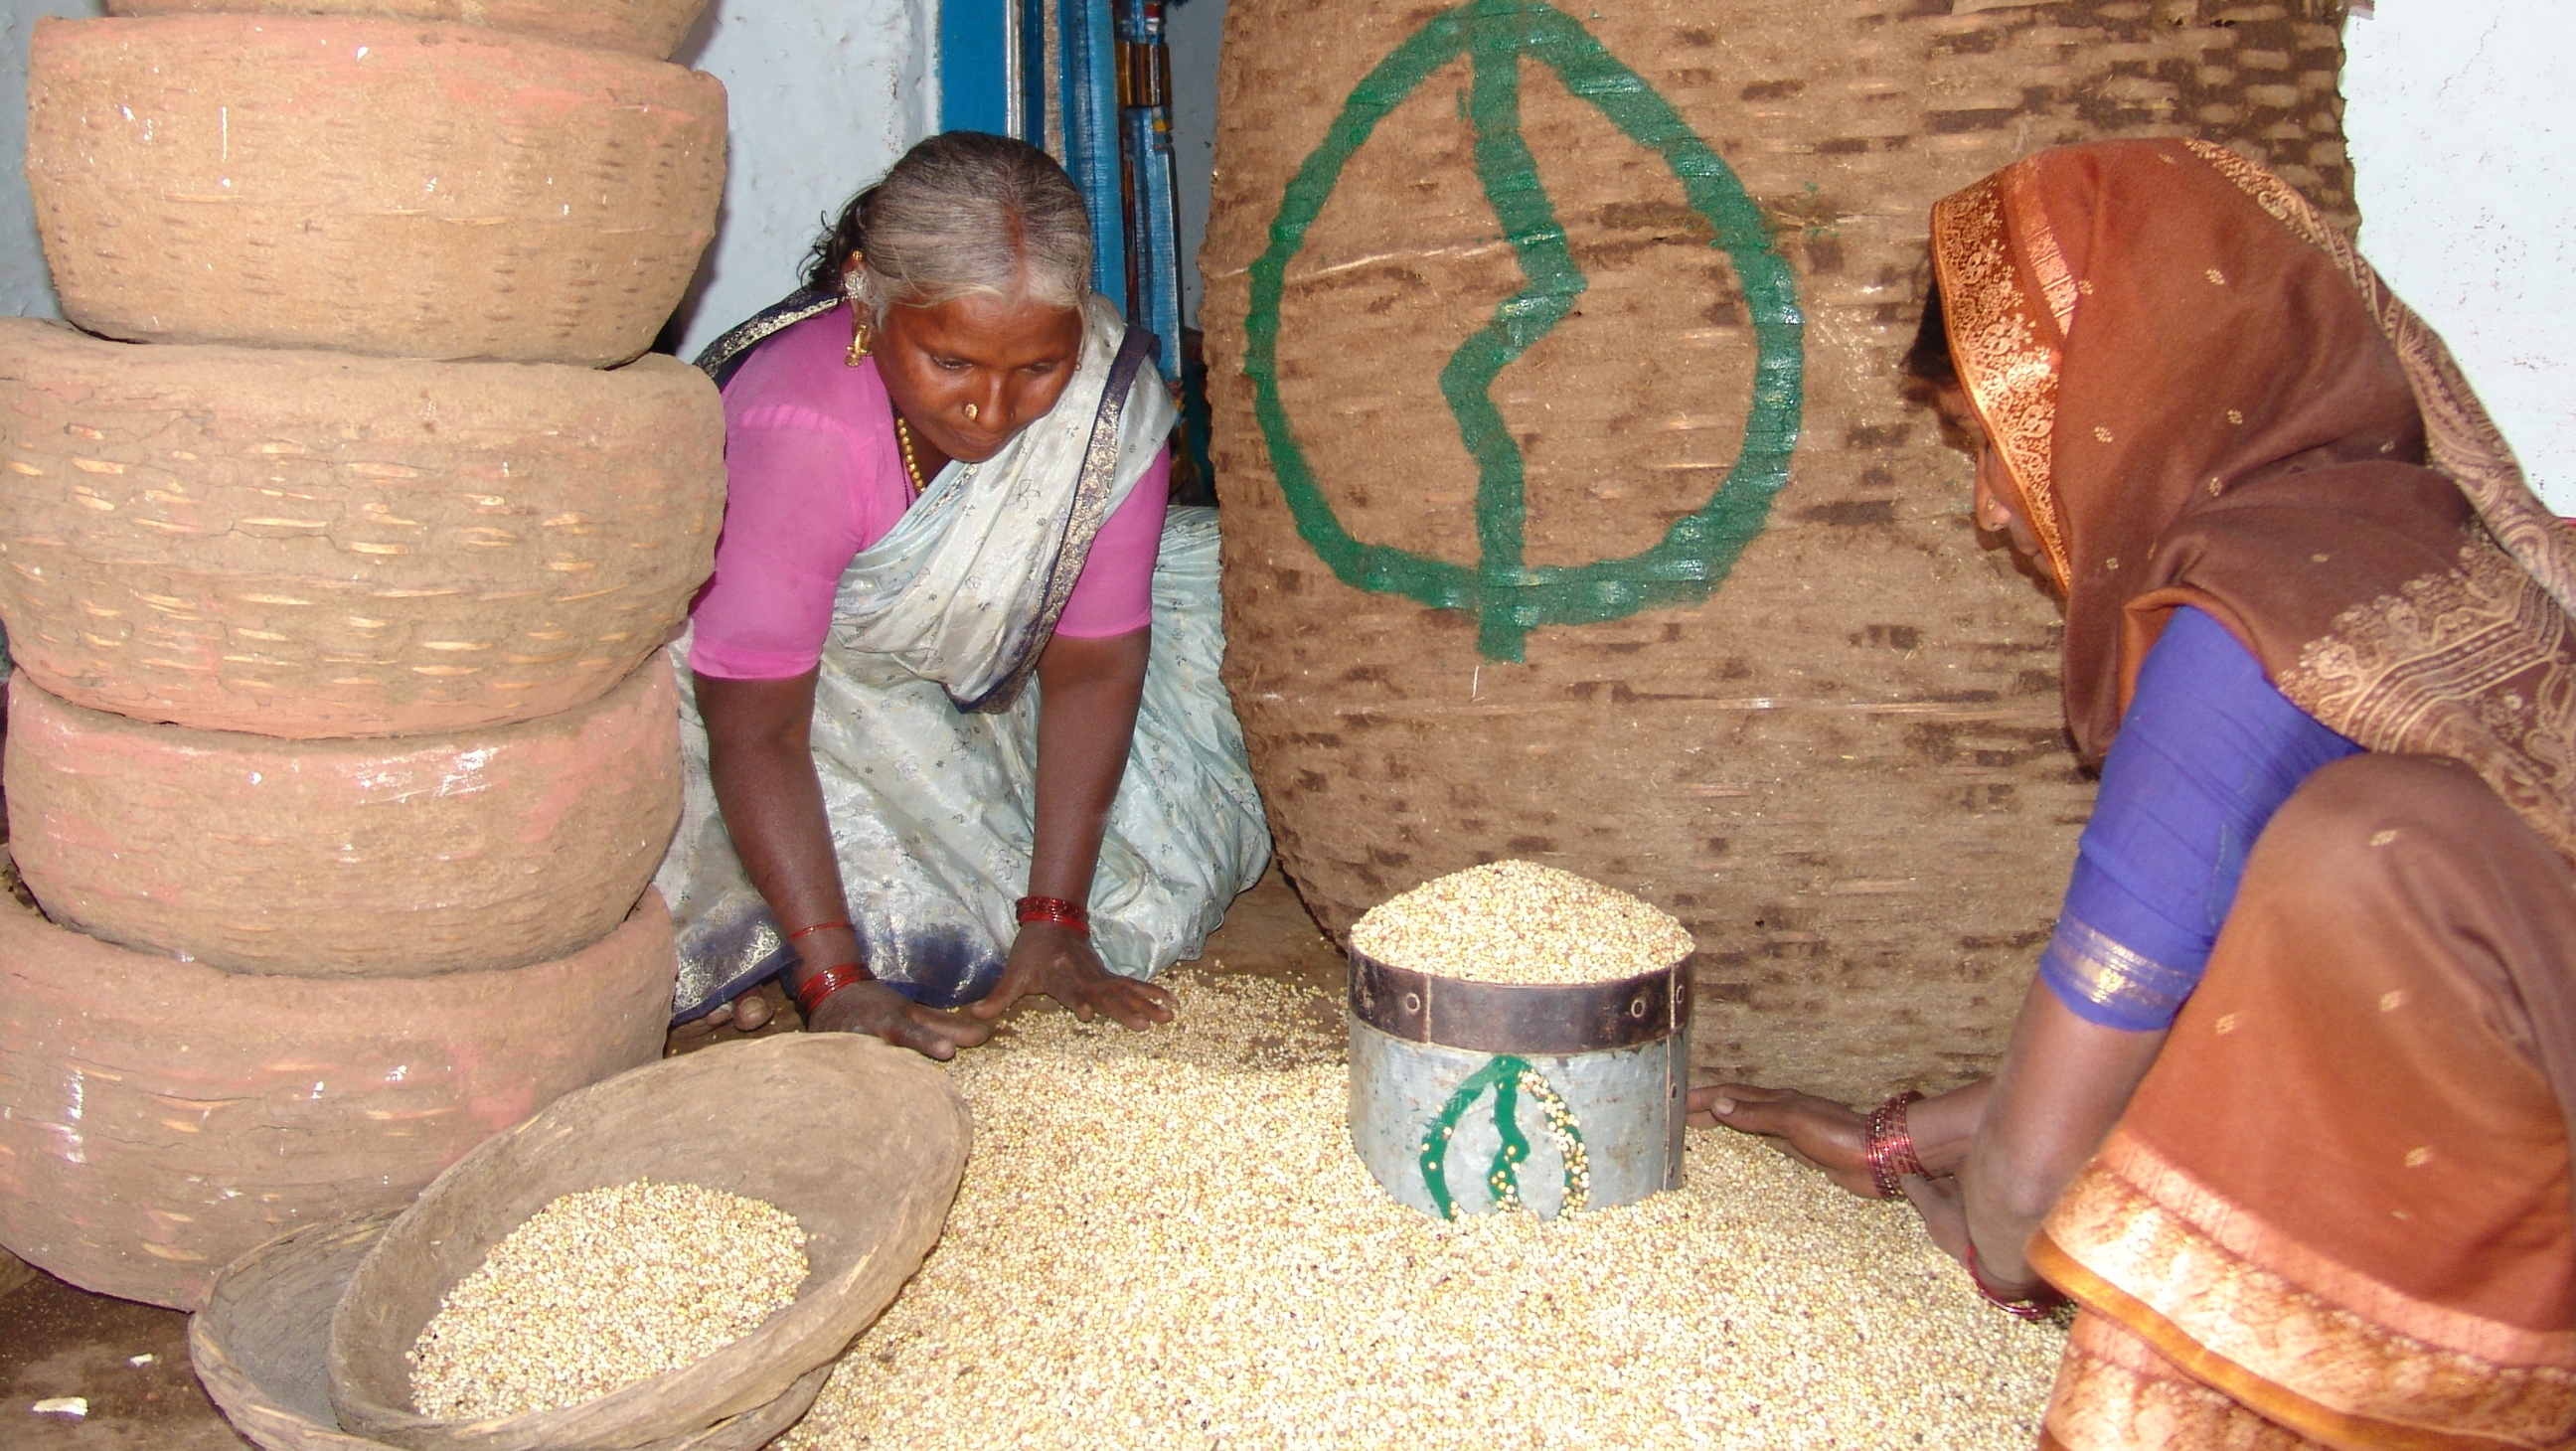 Women distributing seeds in Andhra Pradesh, India (Photo: Deccan Development Society)